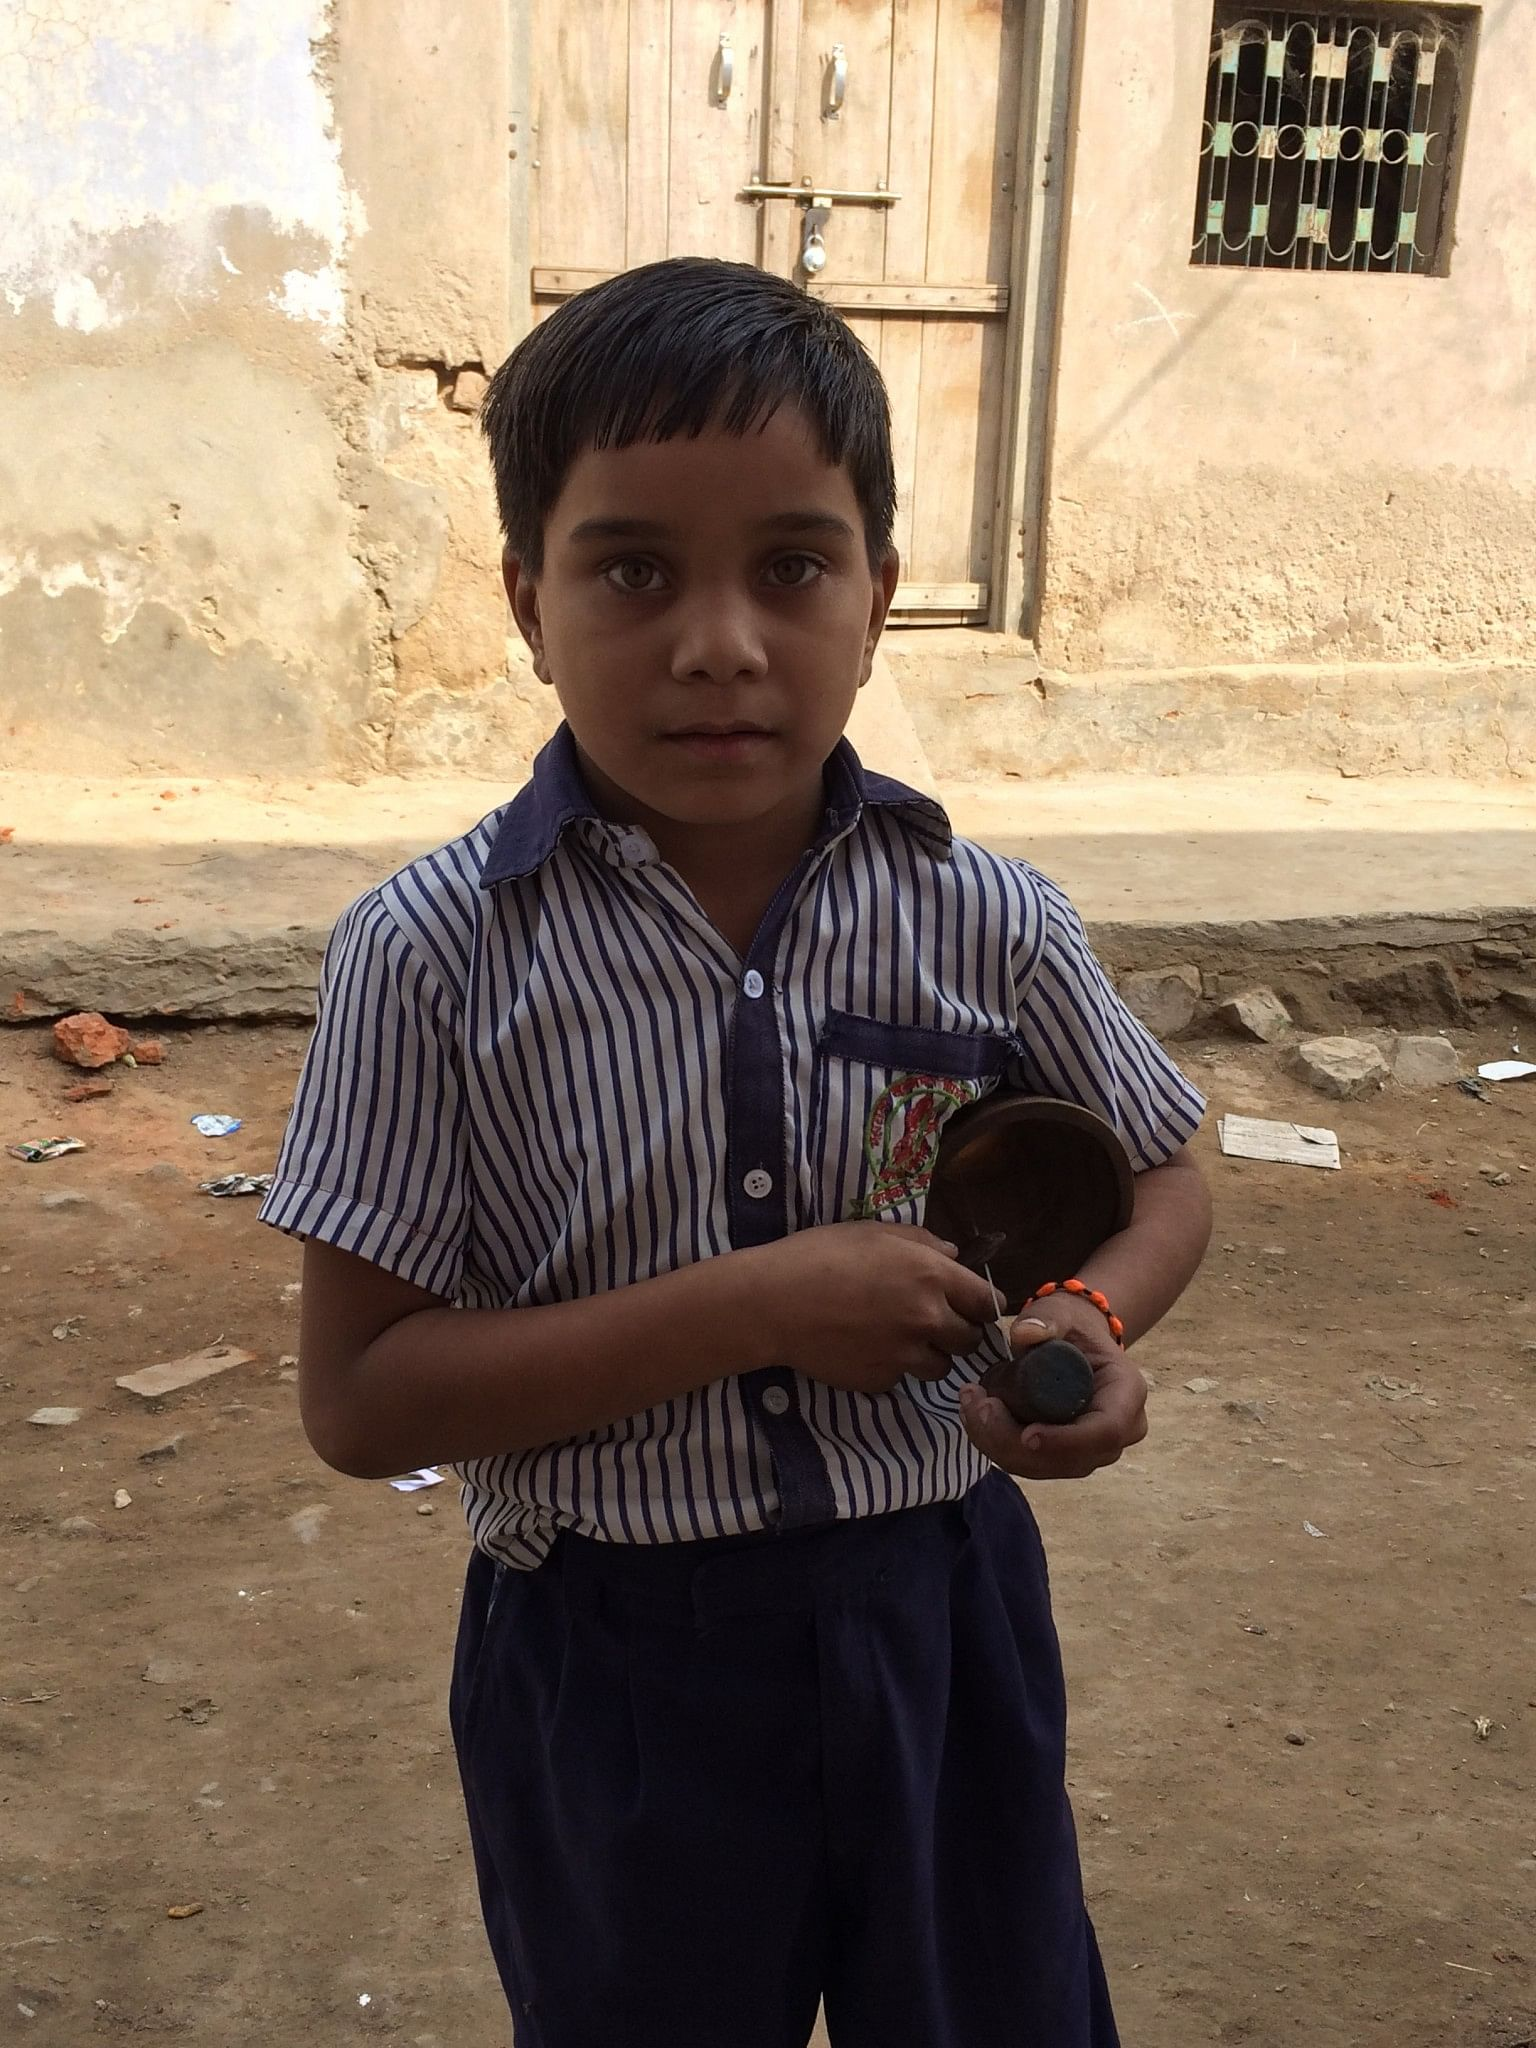 Eight-year-old Aman is the youngest bhapang player in the village. Photo source: Udita Chaturvedi